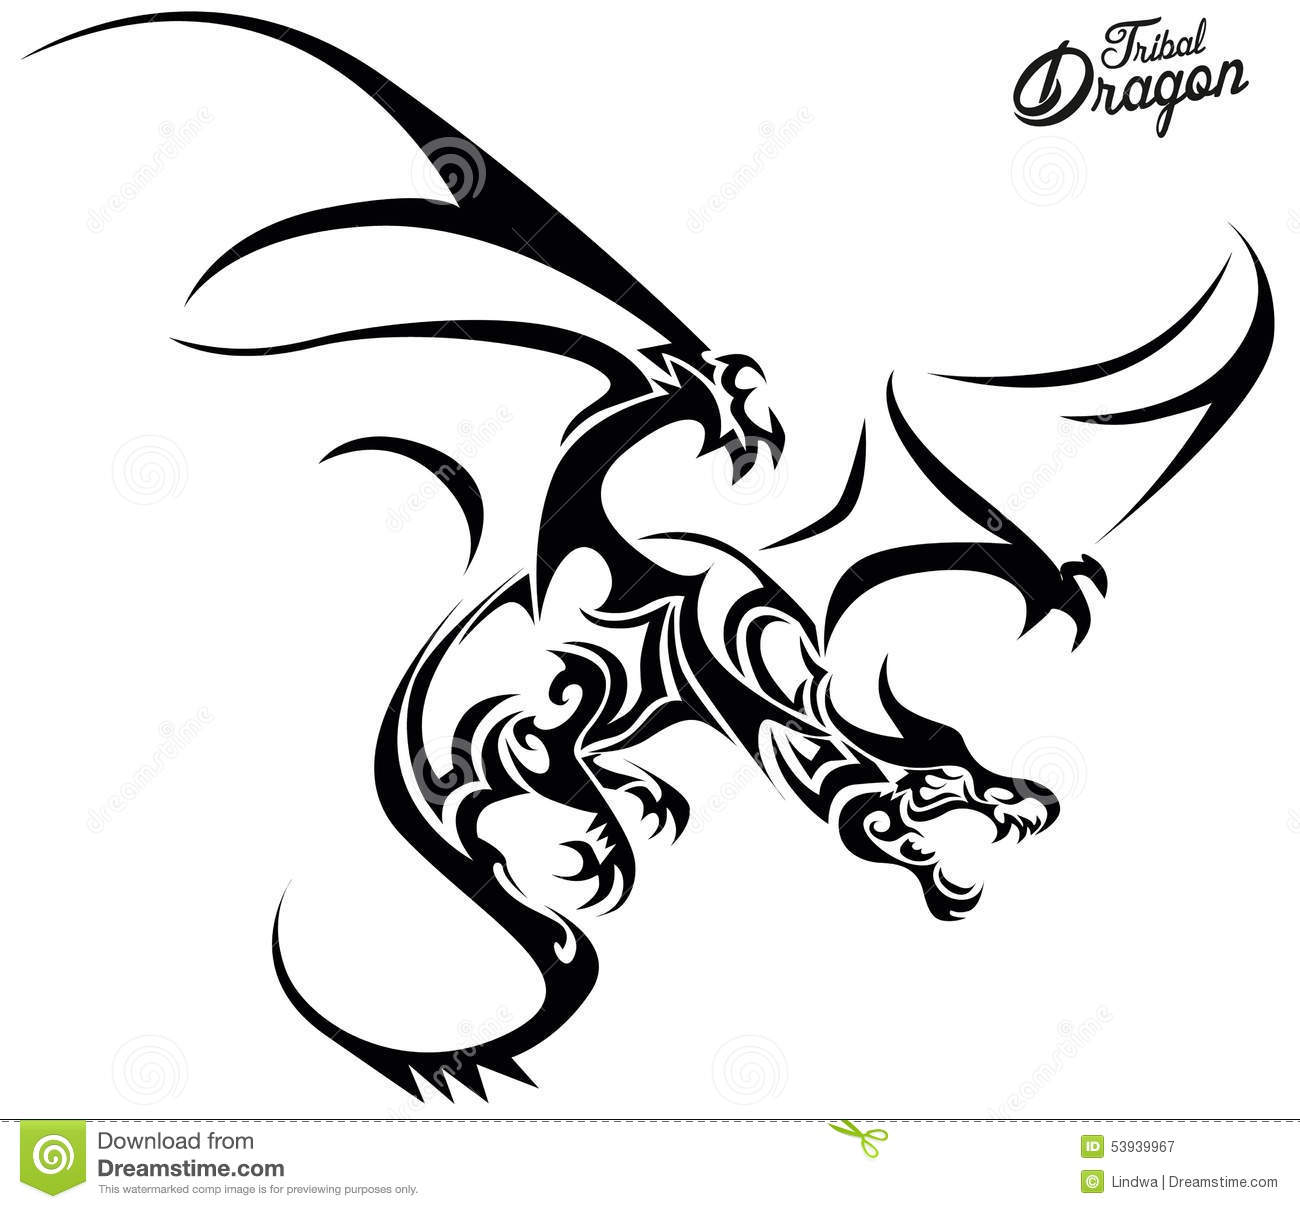 Tribal Dragon Head With An Open Mouth And Dragon Elements